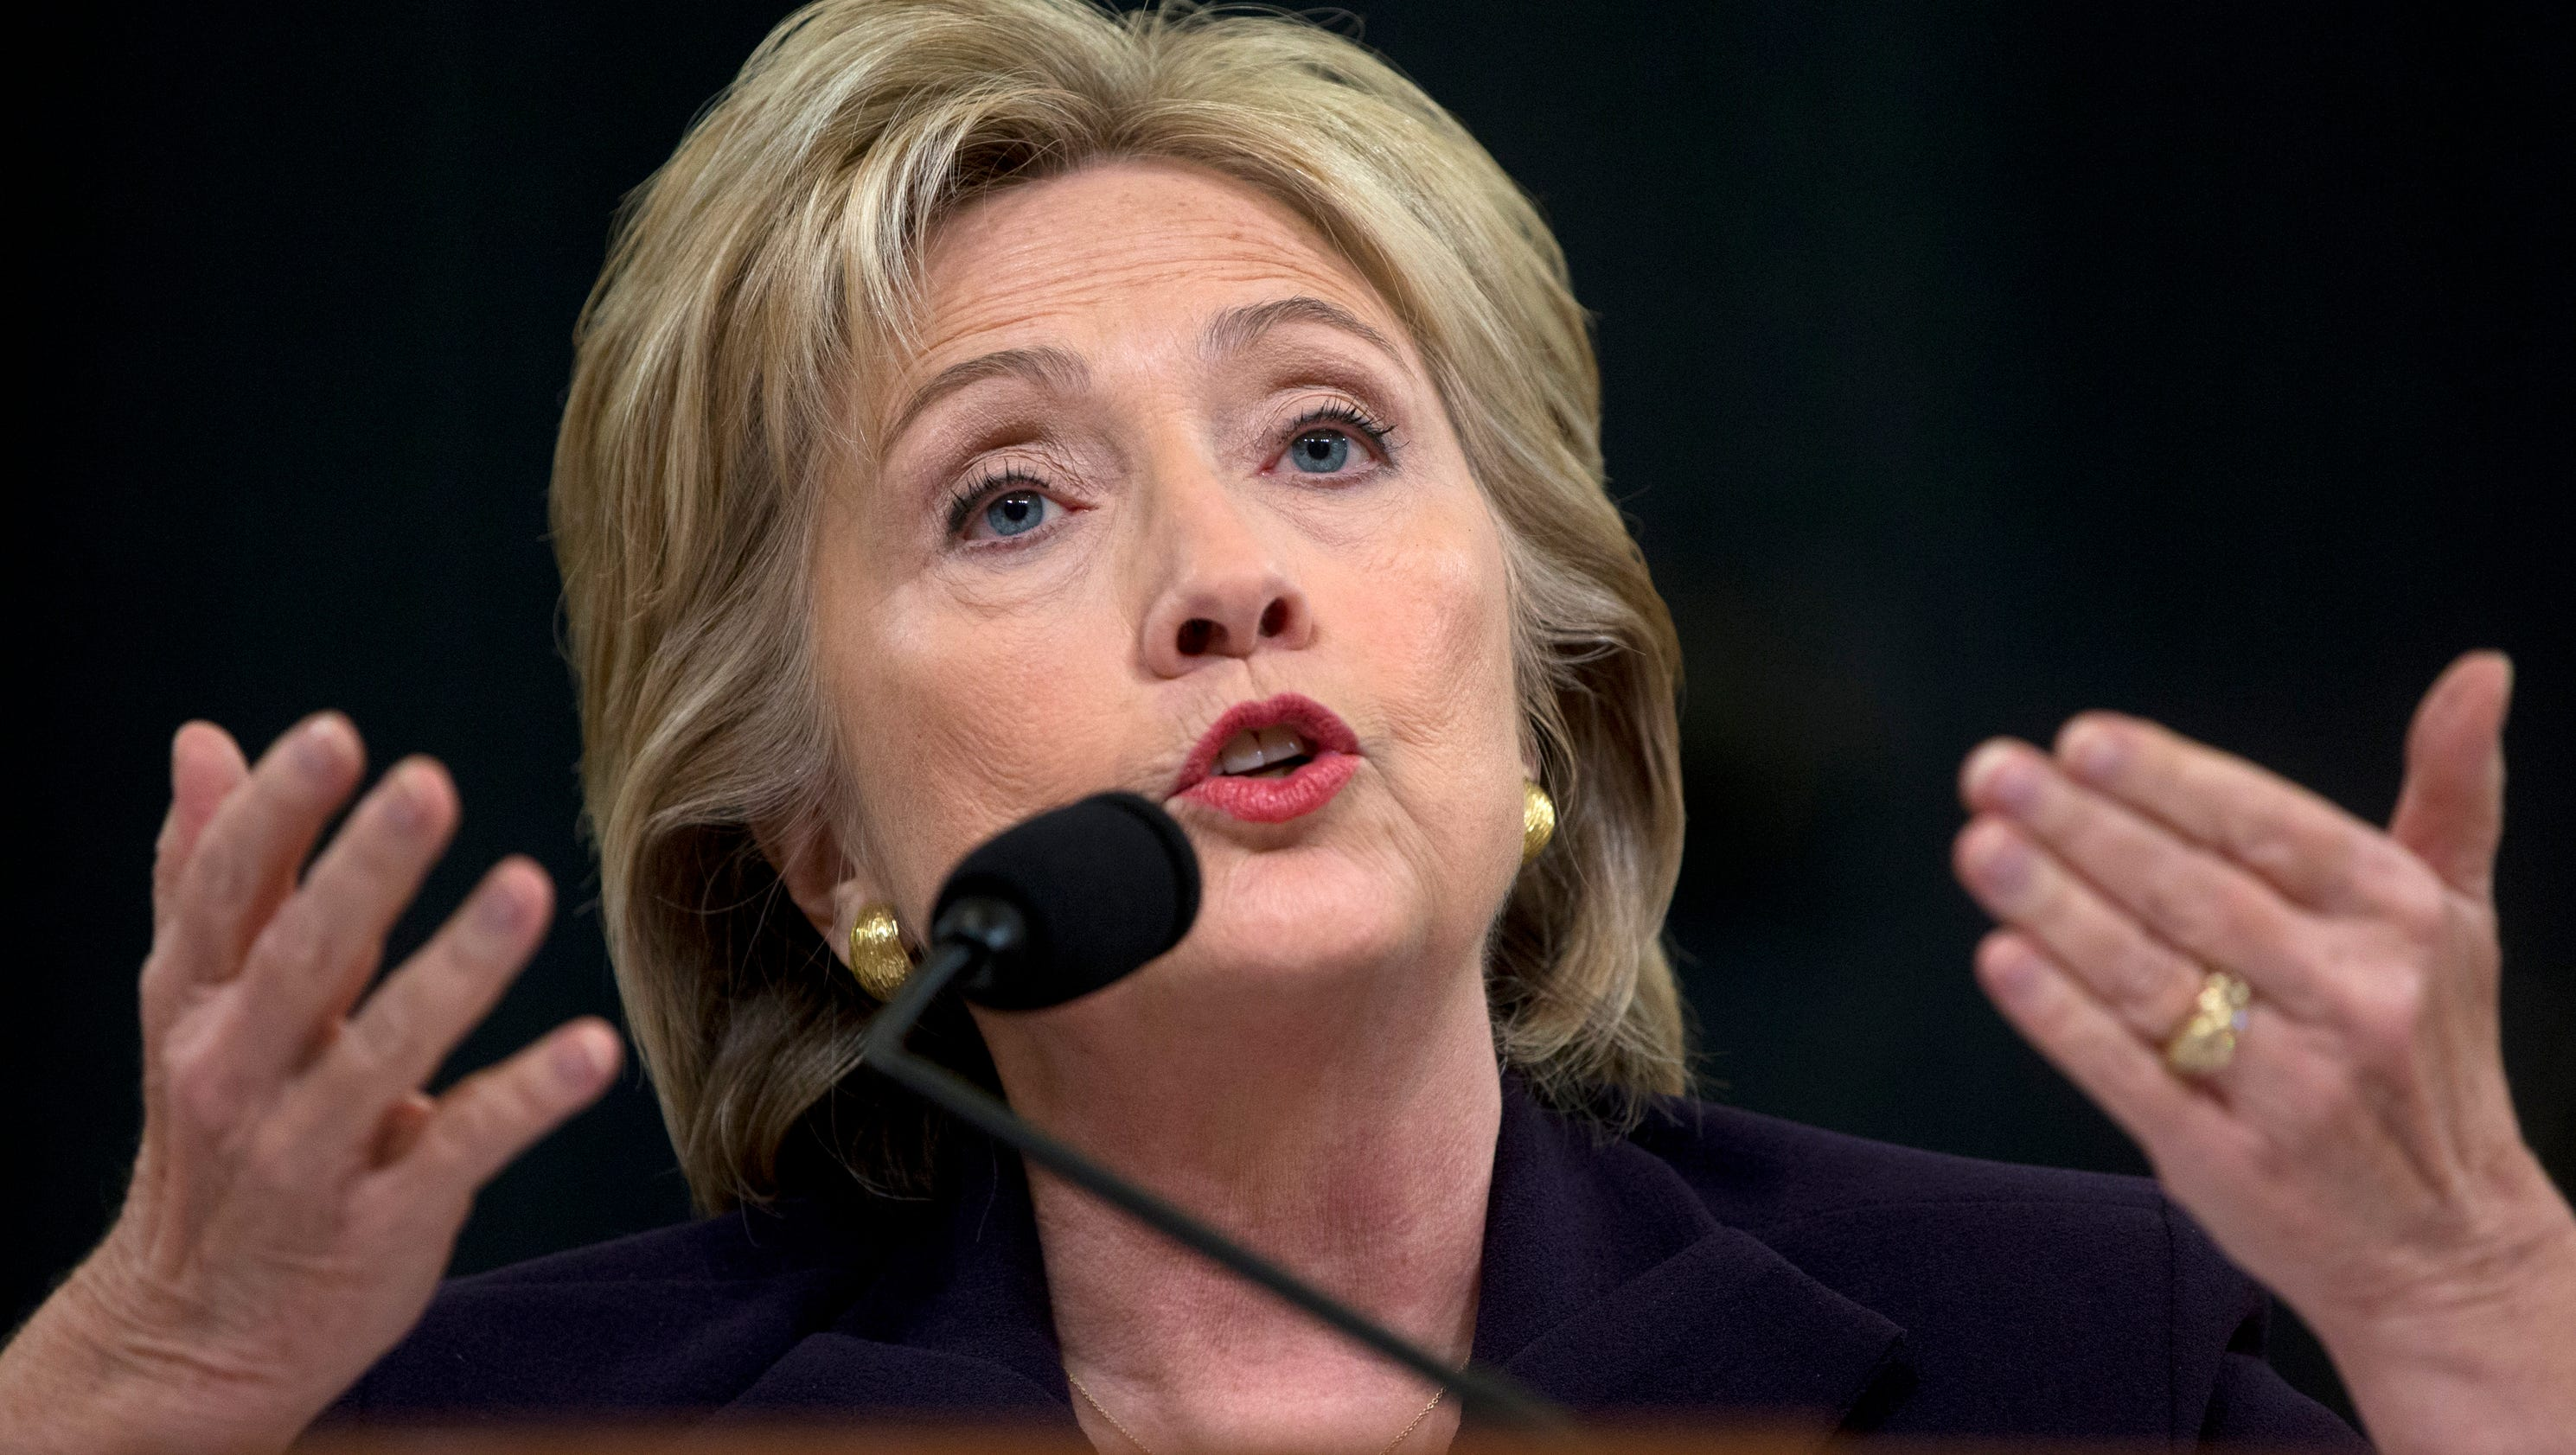 GOP report: U.S. failed to protect Americans in Benghazi